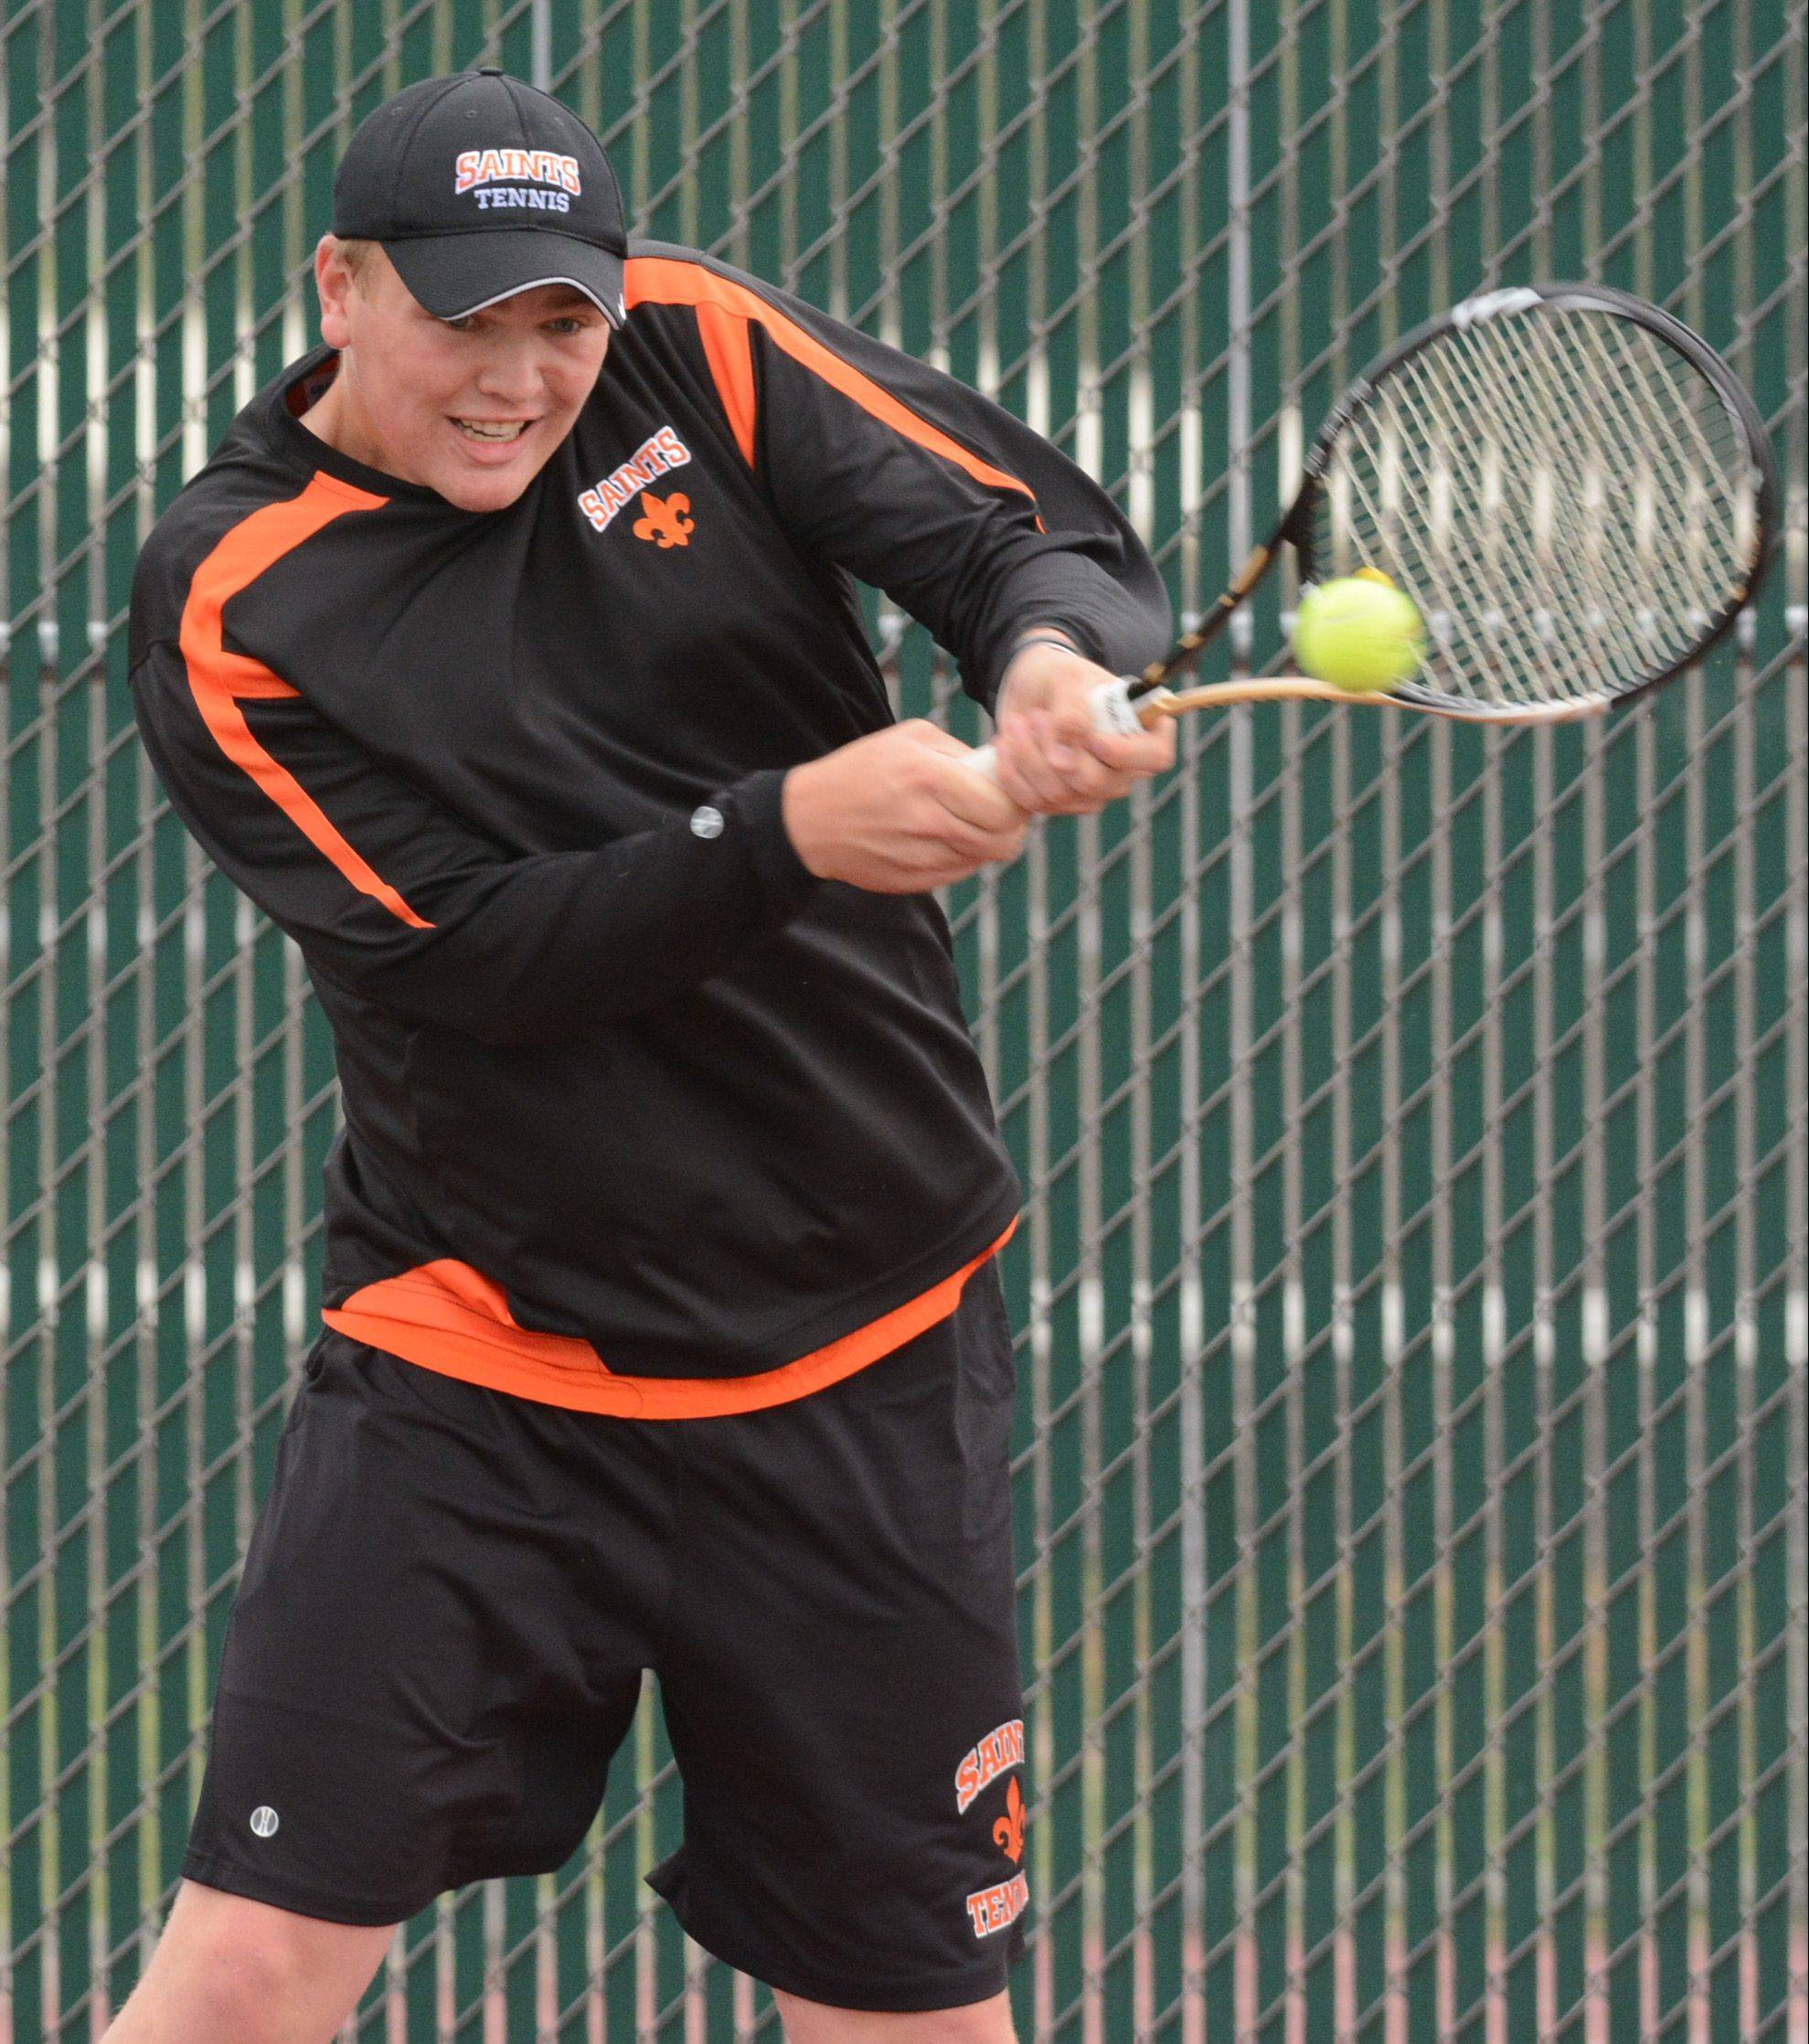 Dave Dvorak/ddvorak@dailyherald.comJasper Koenen of St. Charles East competes at the state boys tennis tournament Saturday